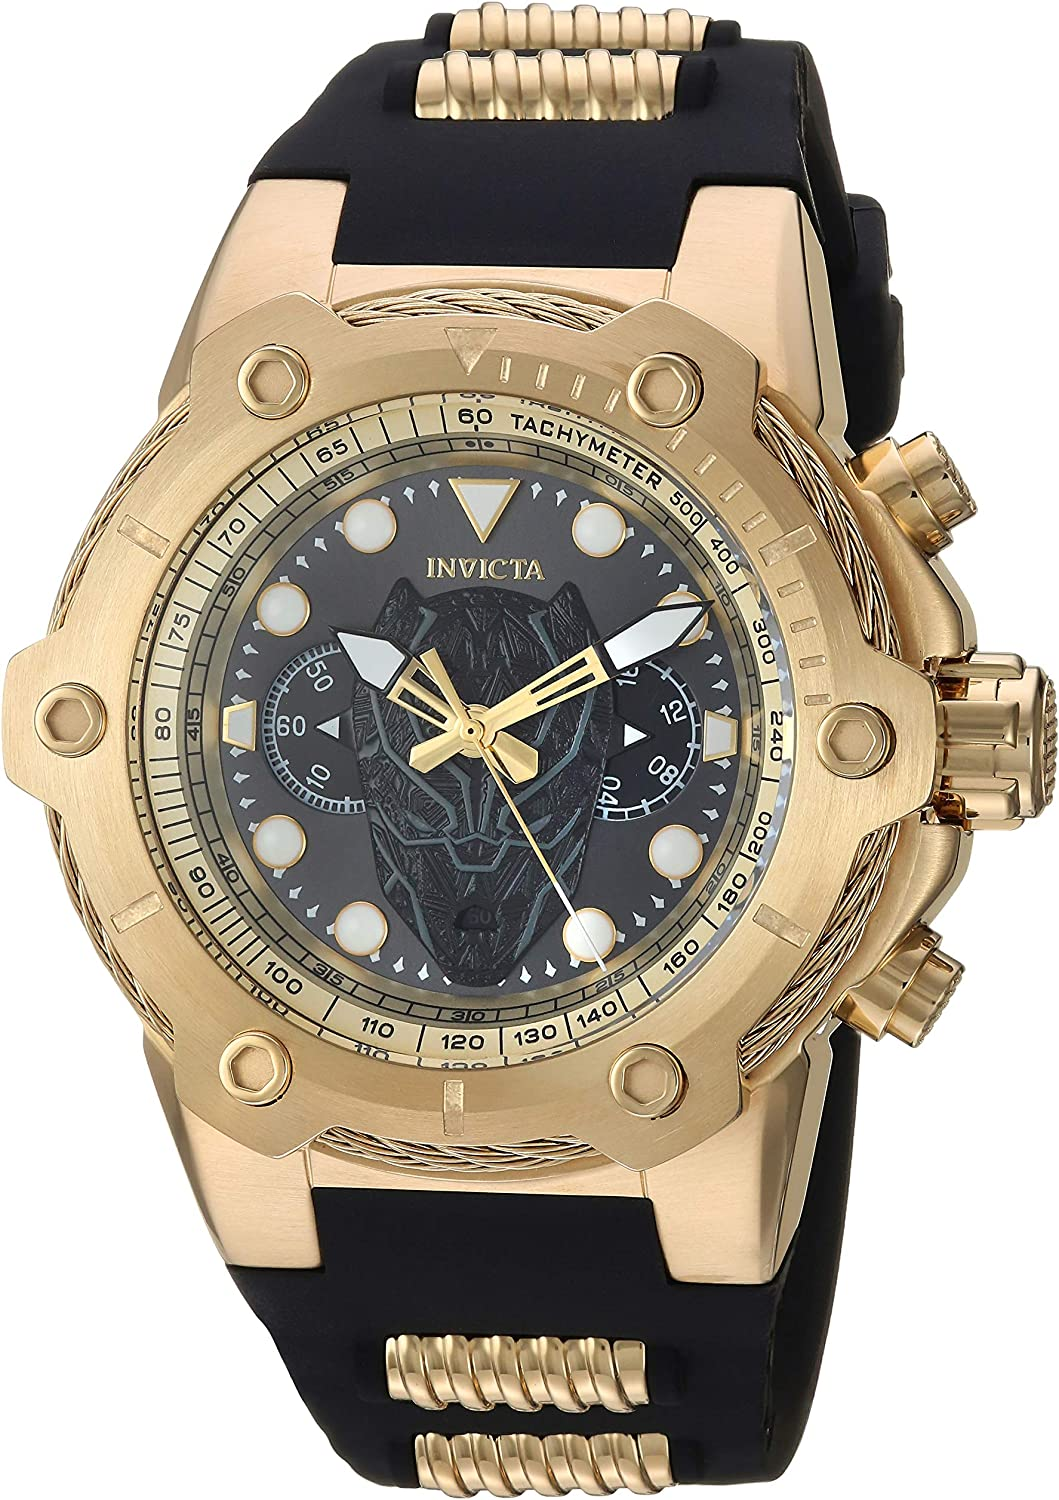 Invicta Men s Marvel Stainless Steel Quartz Watch with Silicone Strap, Black, 30 Model 26921